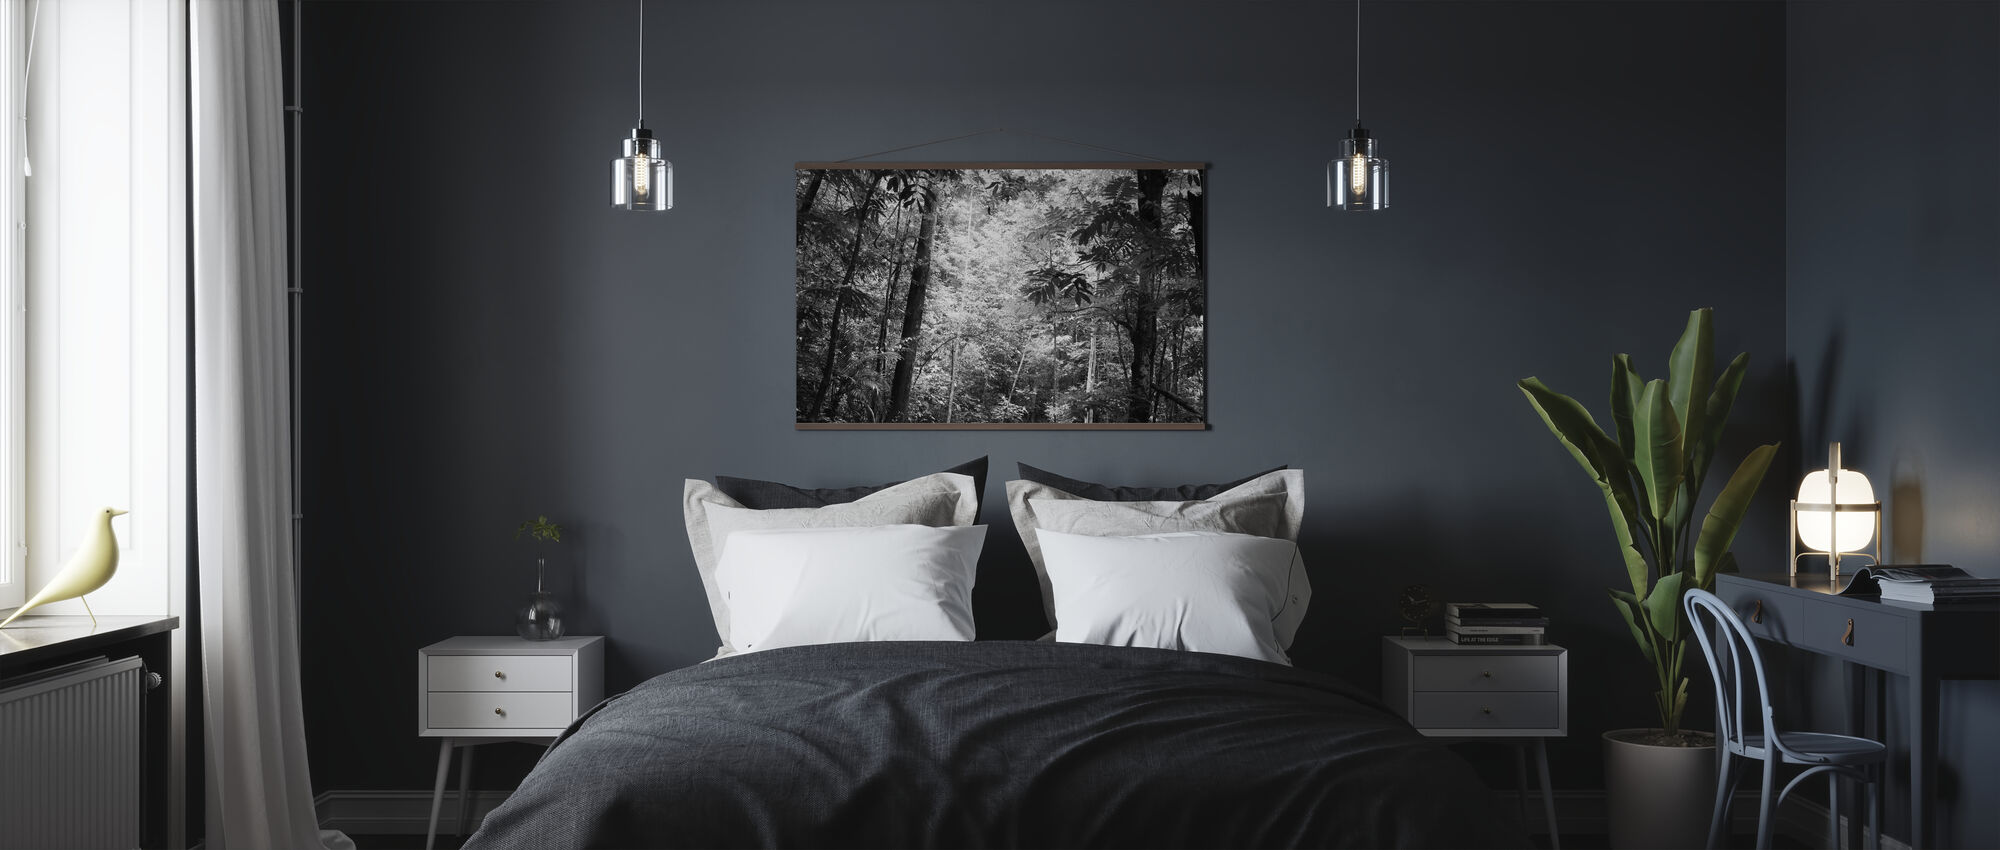 Steamy Forest - b/w - Poster - Bedroom